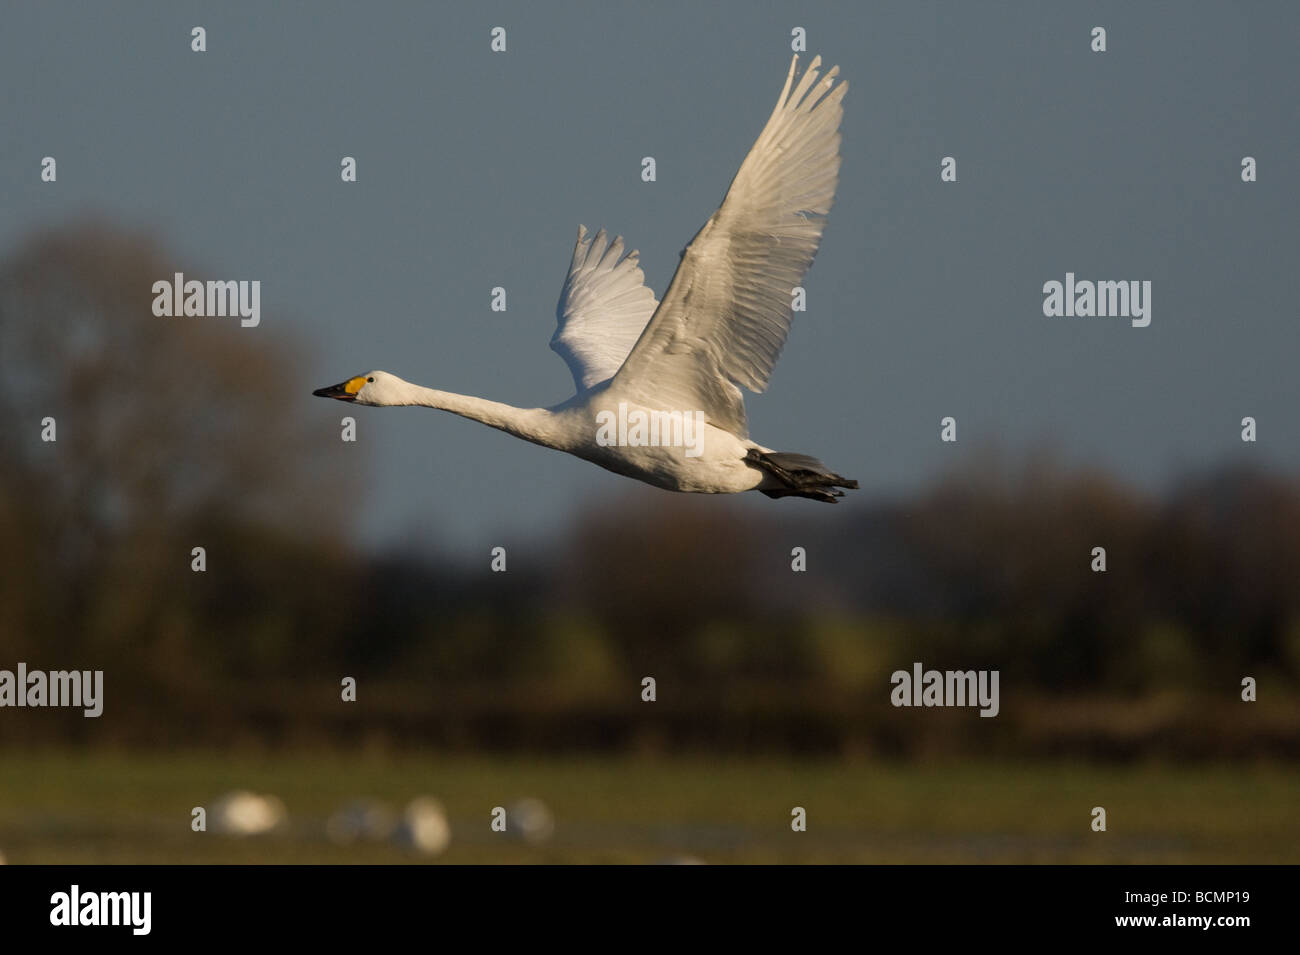 A Bewick's Swan (cygnus columbianus) in flight in front of fields and trees at Slimbridge, UK Stock Photo